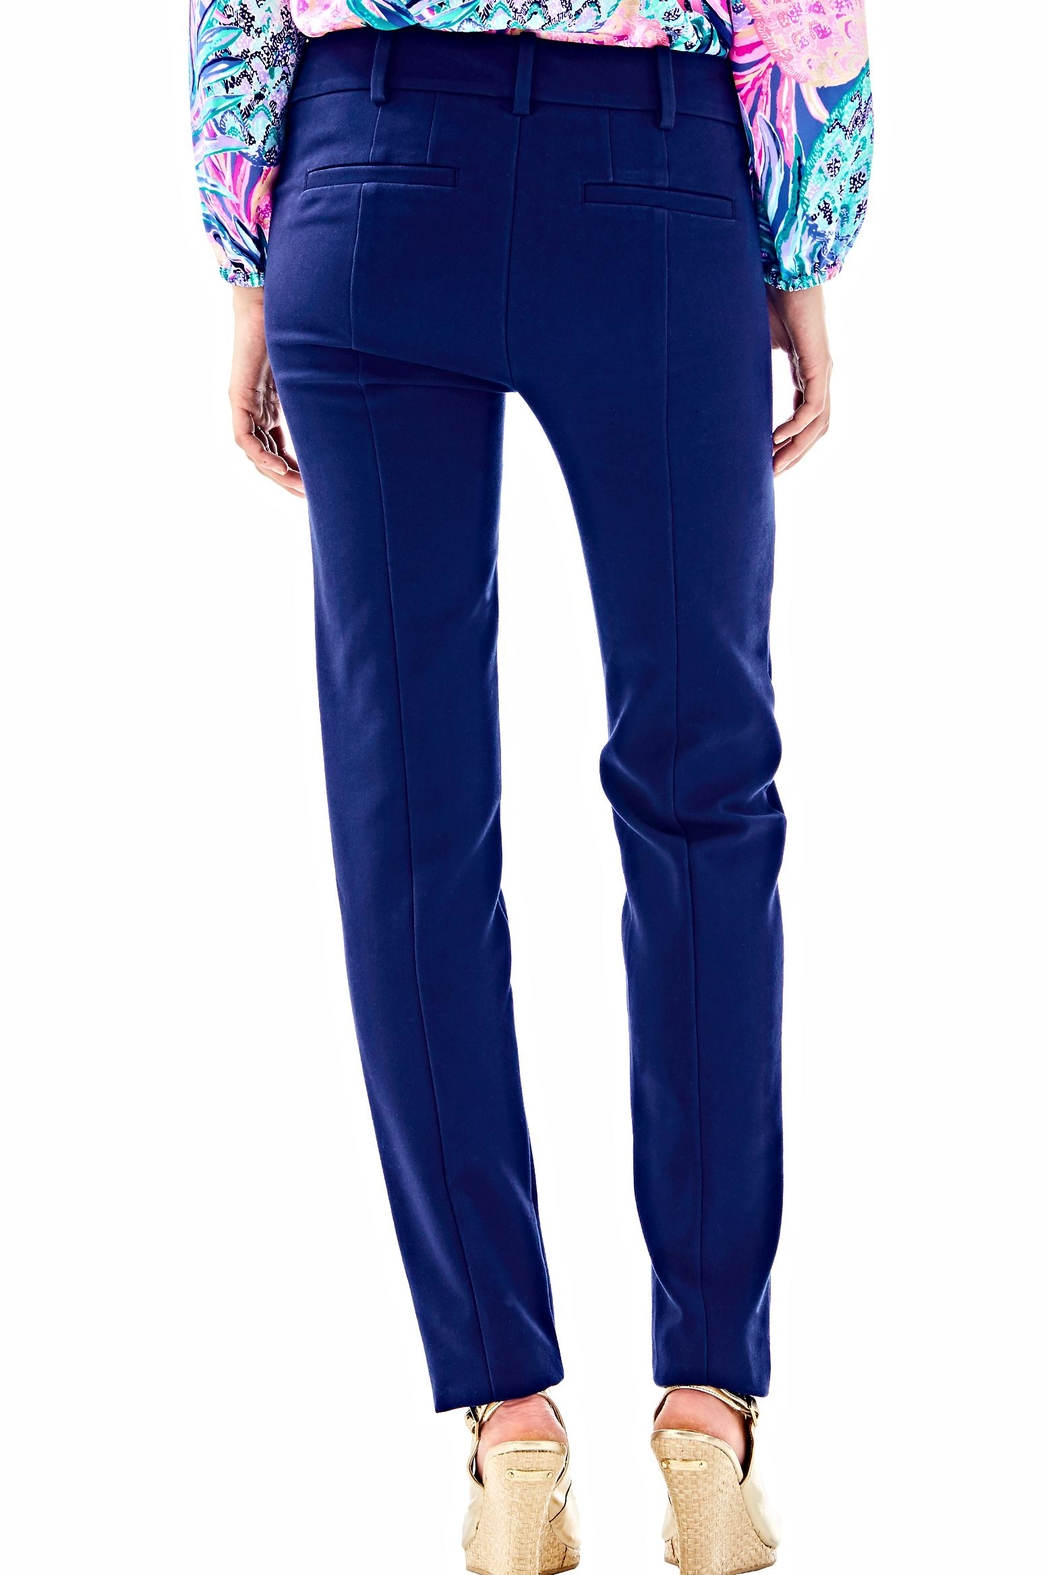 Lilly Pulitzer Chantal Stretch Pant - Front Full Image